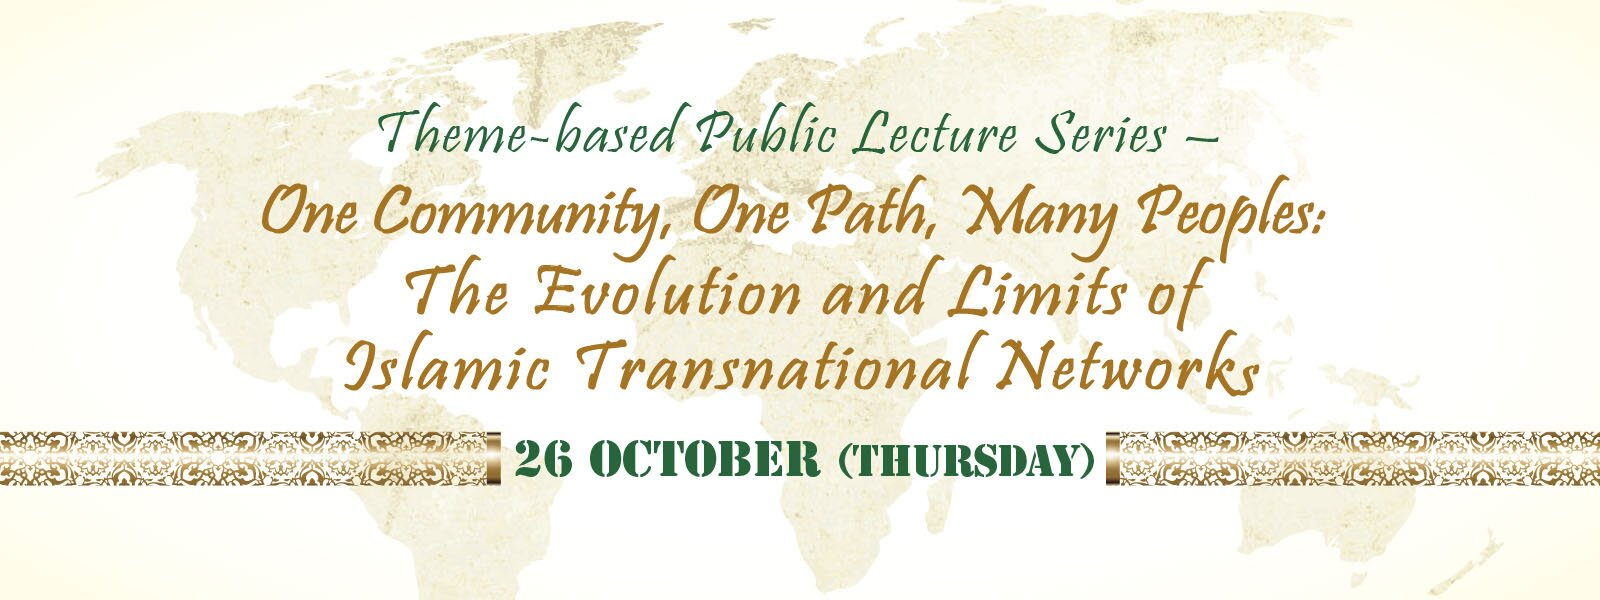 Theme-based Public Lecture Series – One Community, One Path, Many Peoples: Islamic Transnational Networks